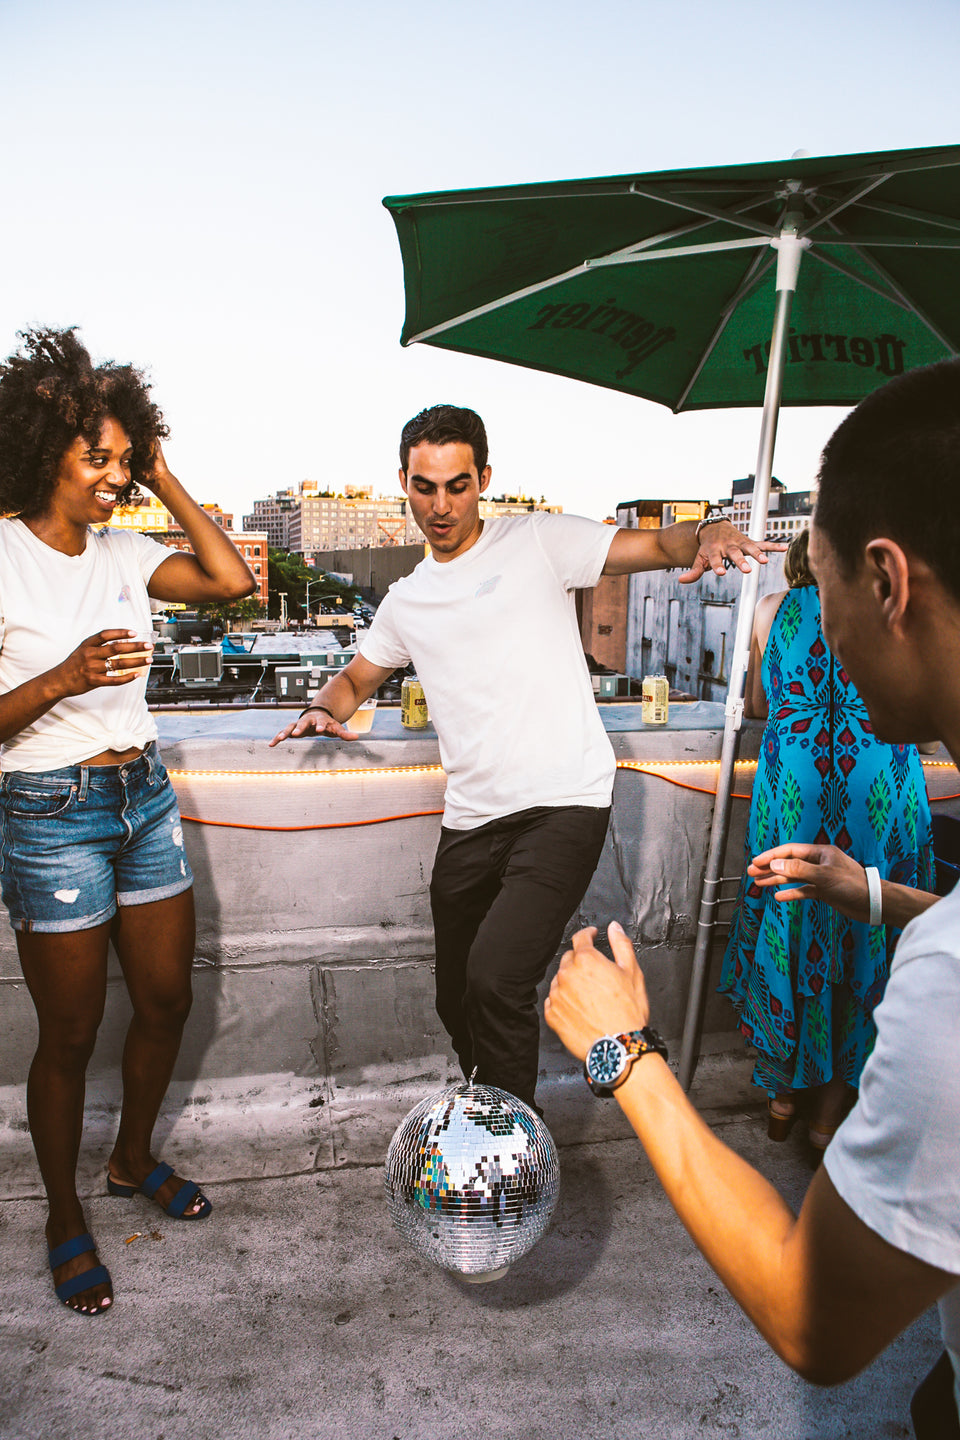 Male and female model wearing a Thousand Deep Planet Disco iridescent white shirt. Male model is balancing a disco ball on top of his foot while the female model watches in excitement. Photo taken on rooftop at Lightning Society in Brooklyn, New York